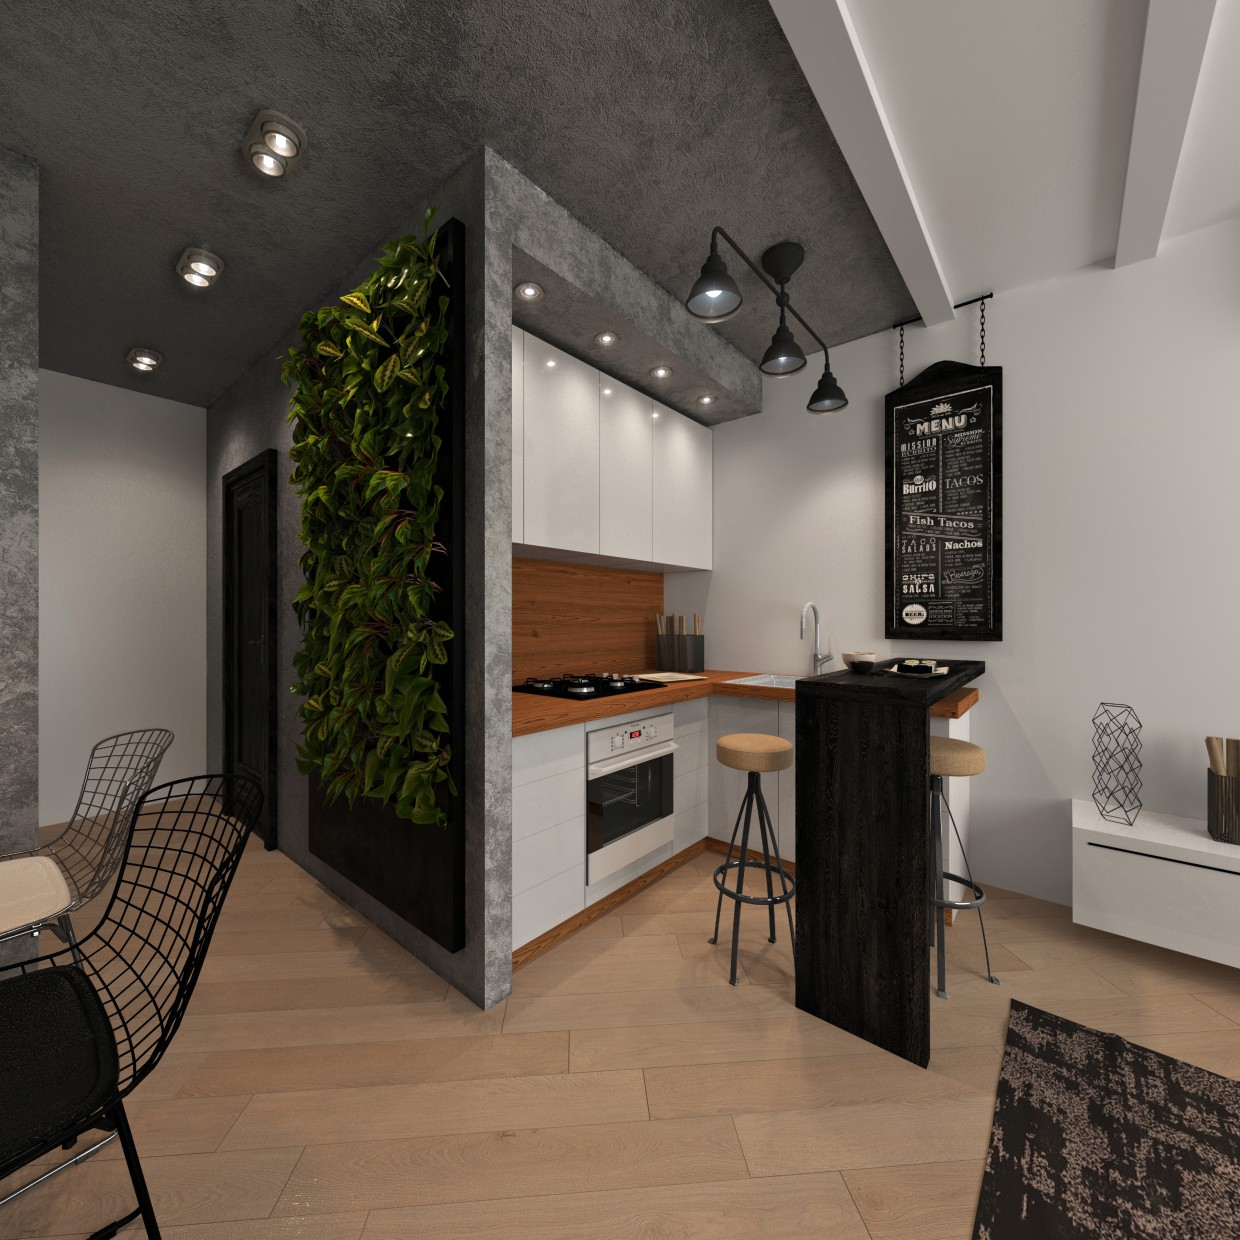 Training project in 3d max corona render image